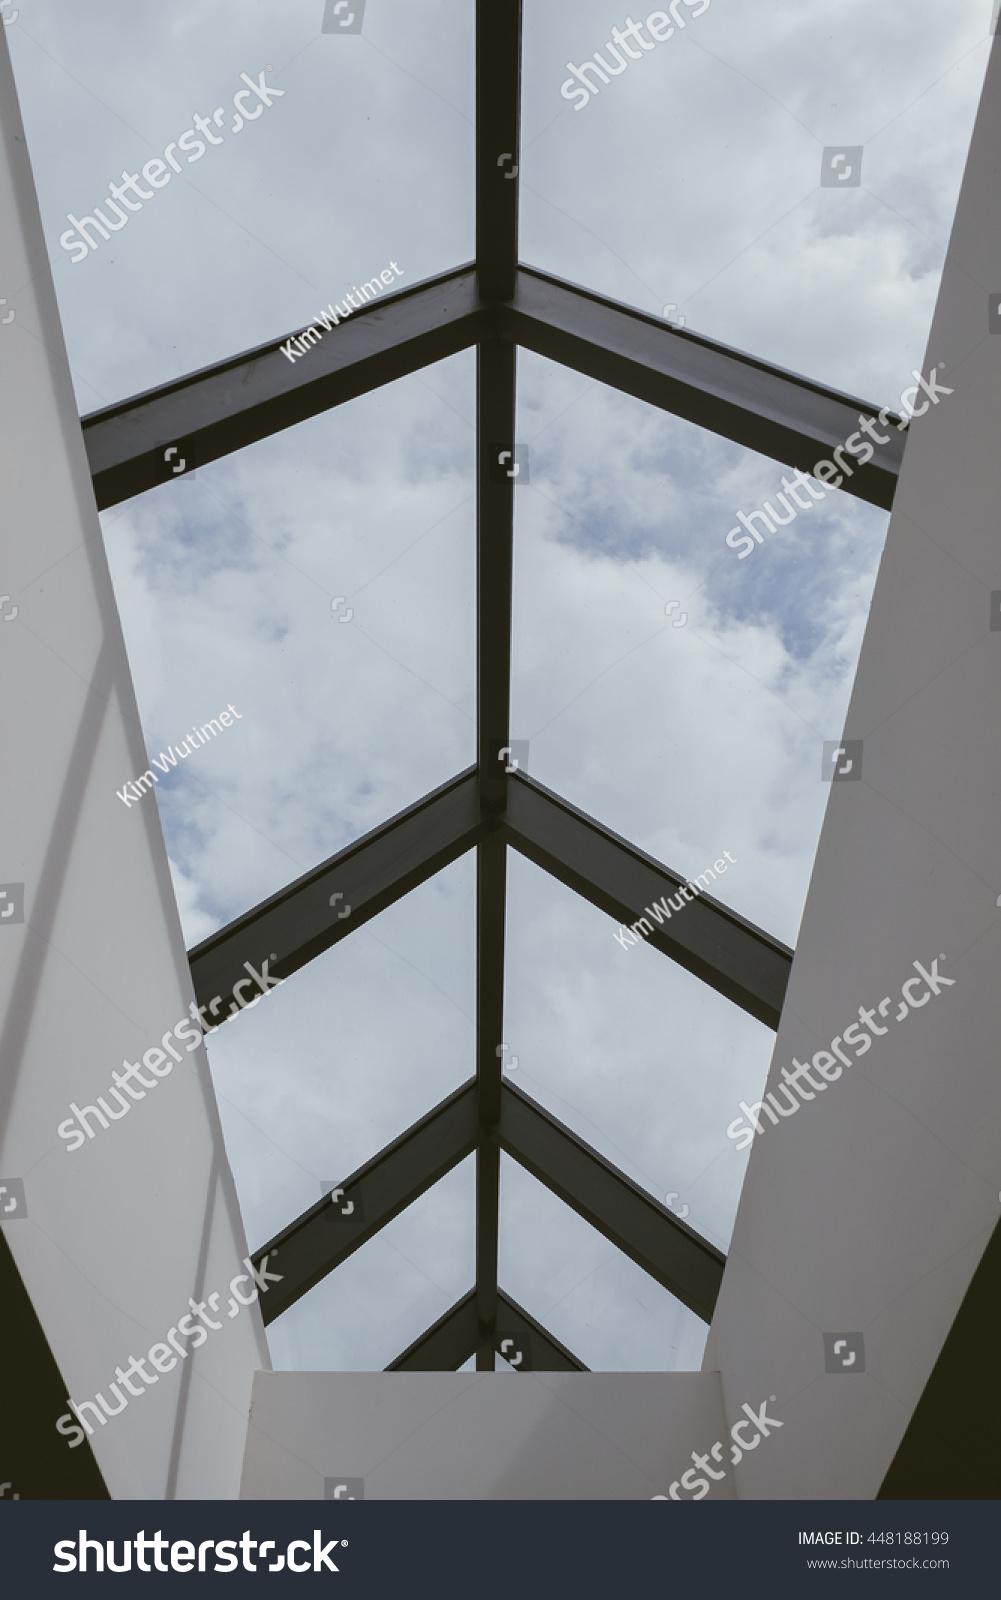 Glass roof design see through sky stock photo 448188199 for Glass roof design